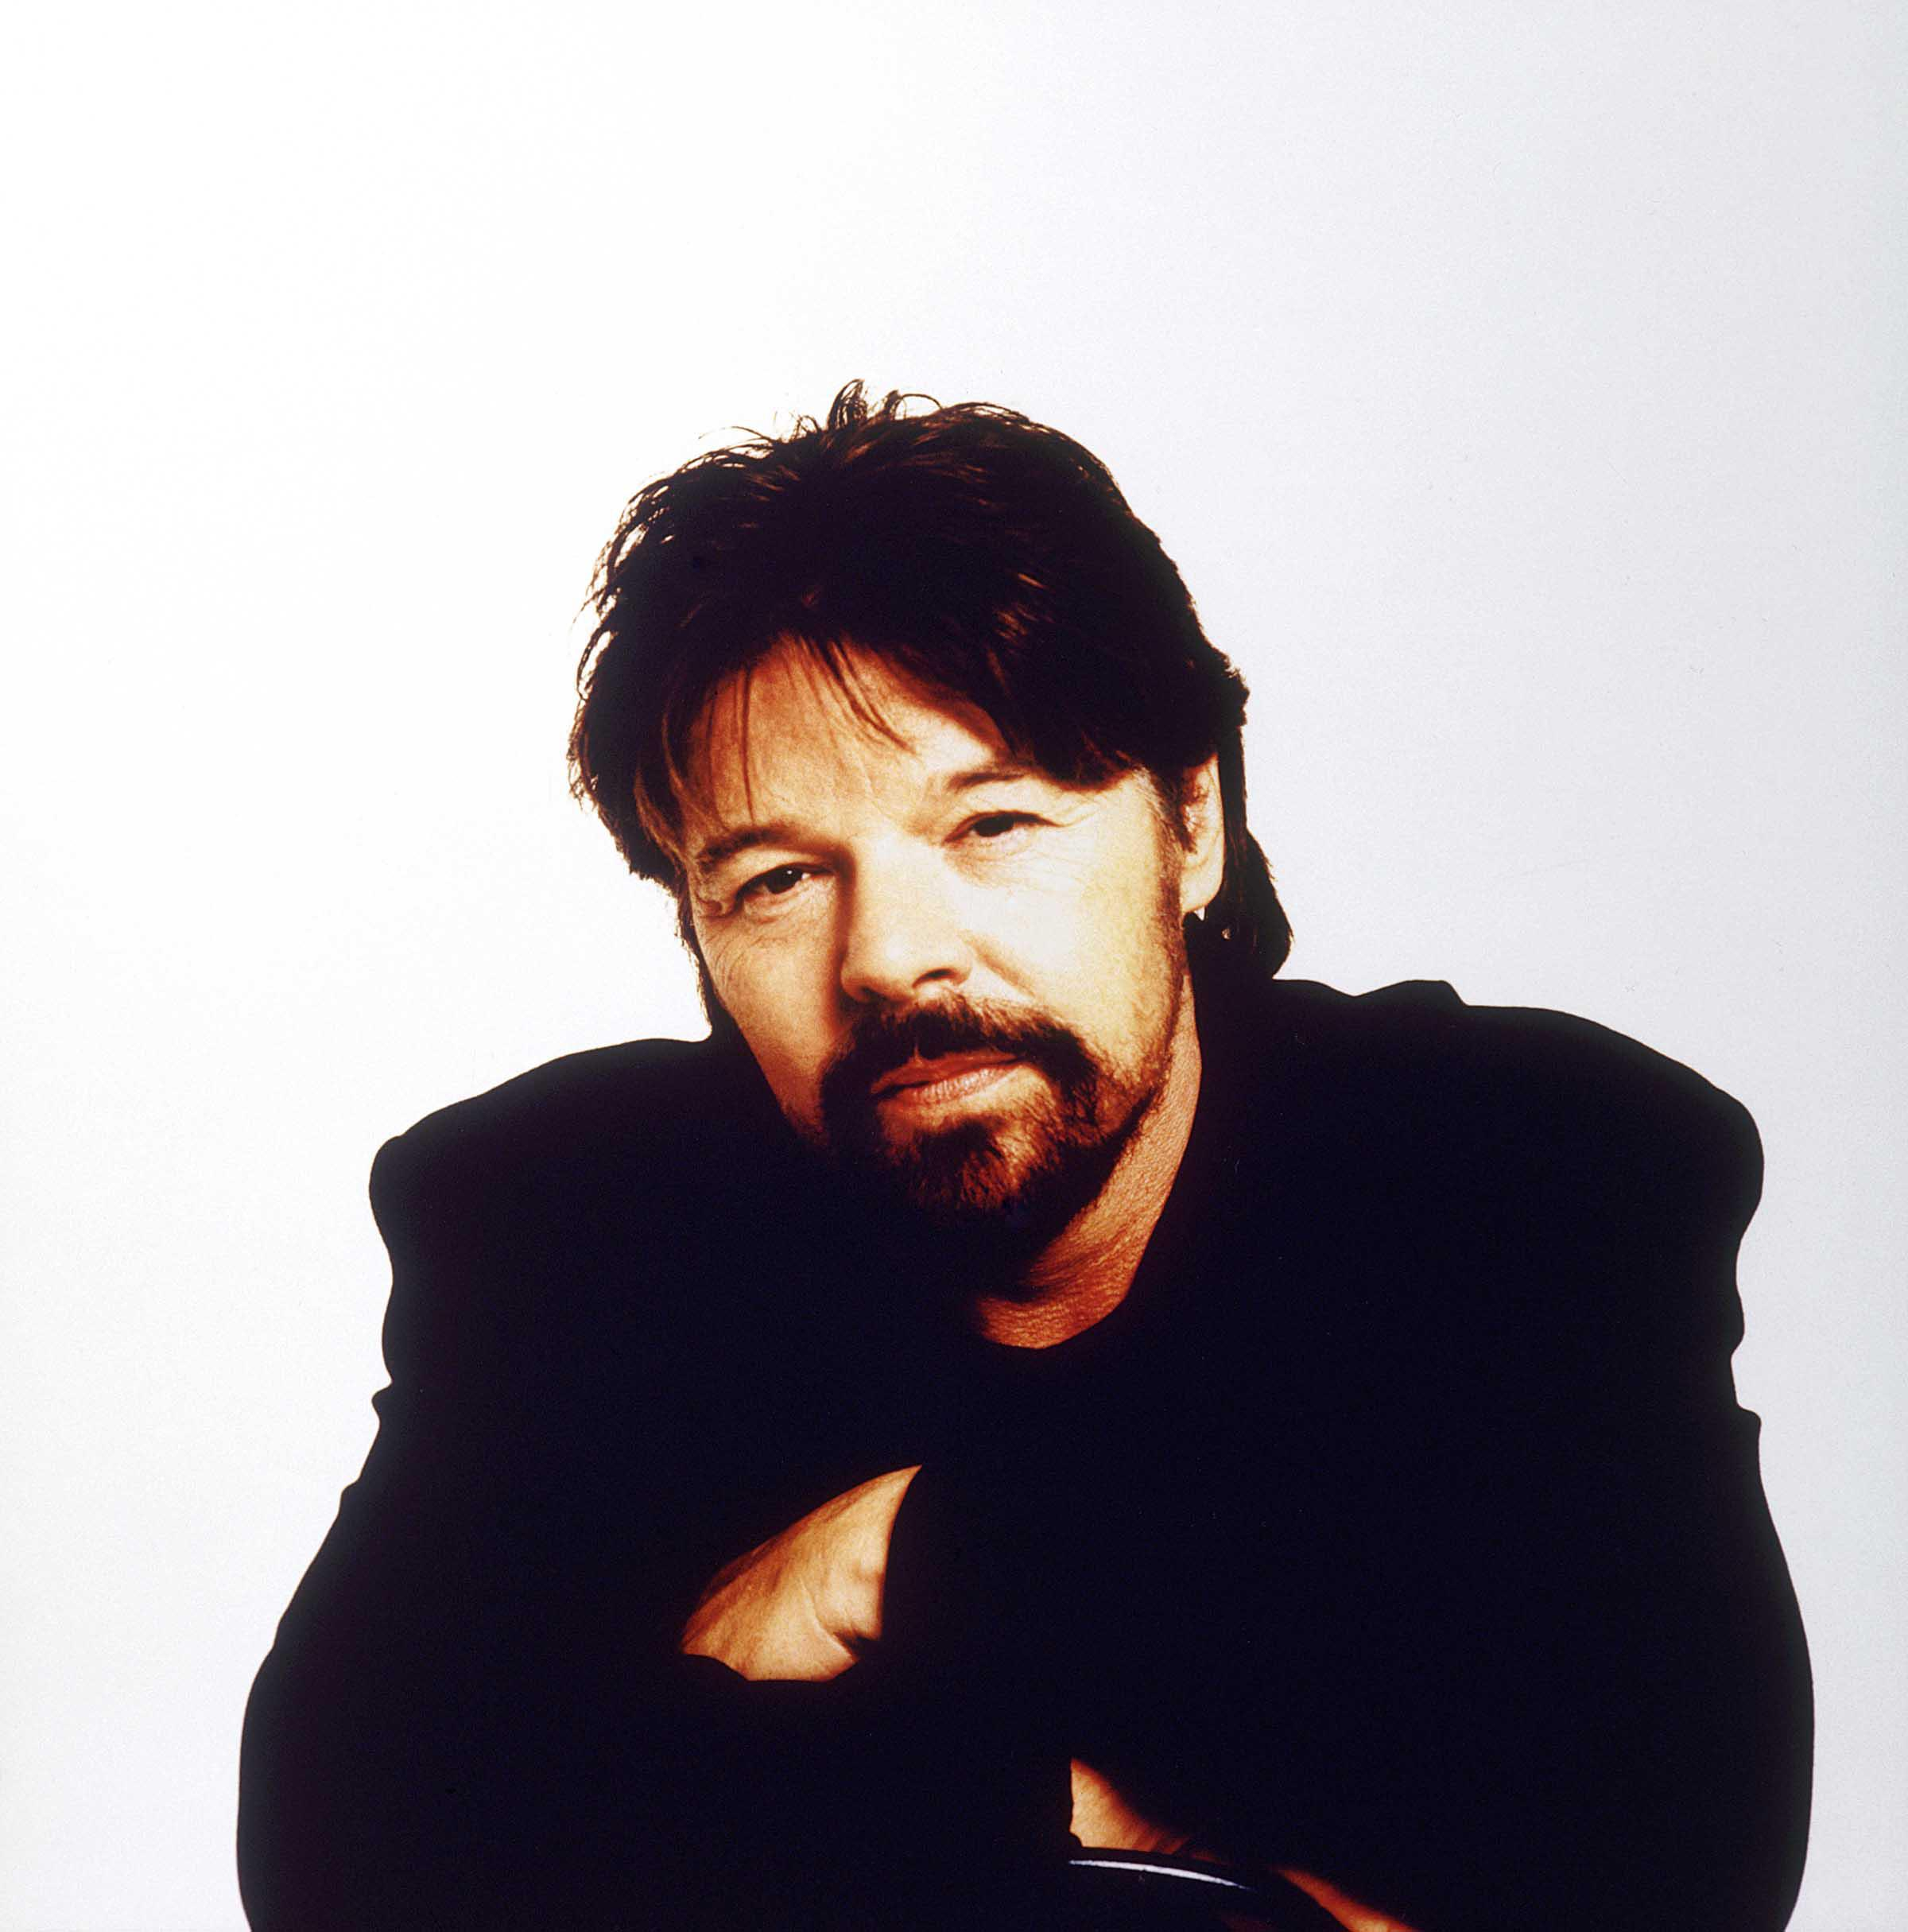 More from Bob Seger